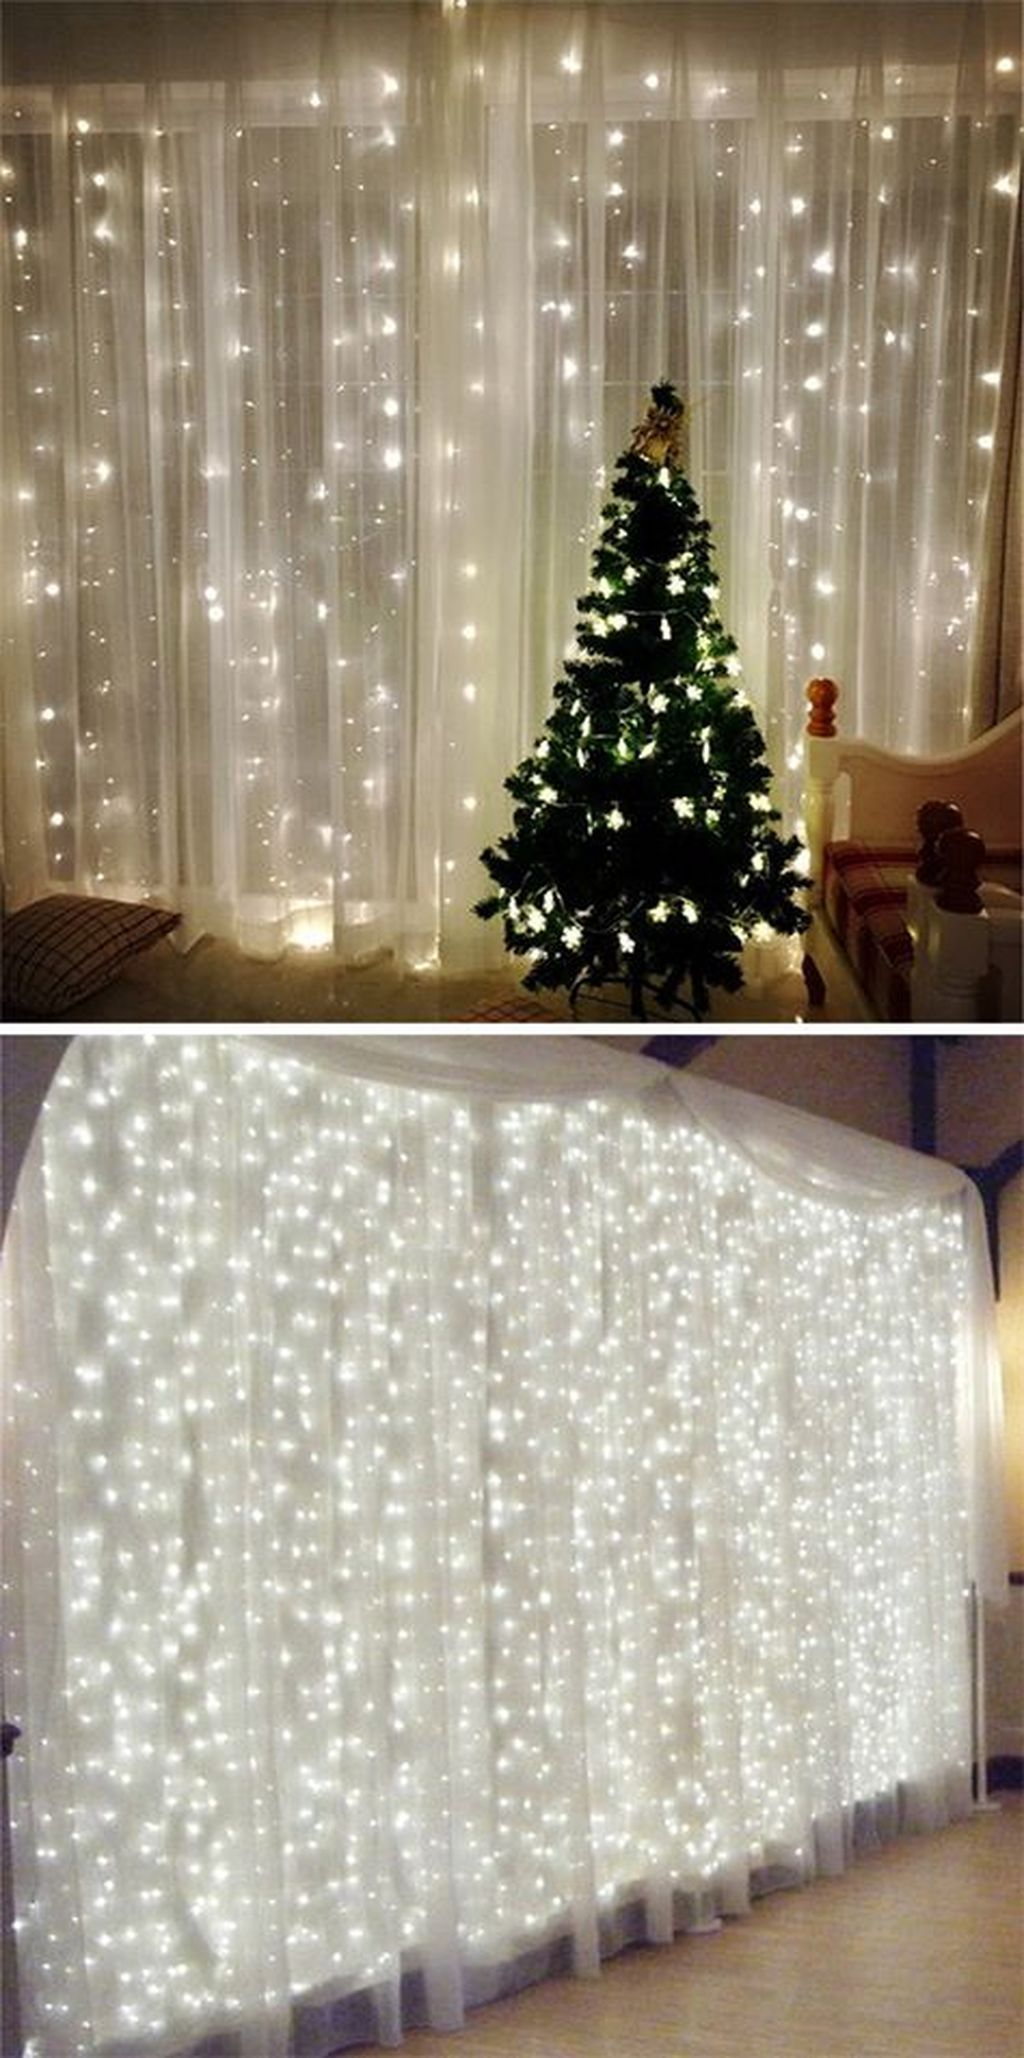 Cheap and easy christmas decorations for your apartment ideas (12 ...